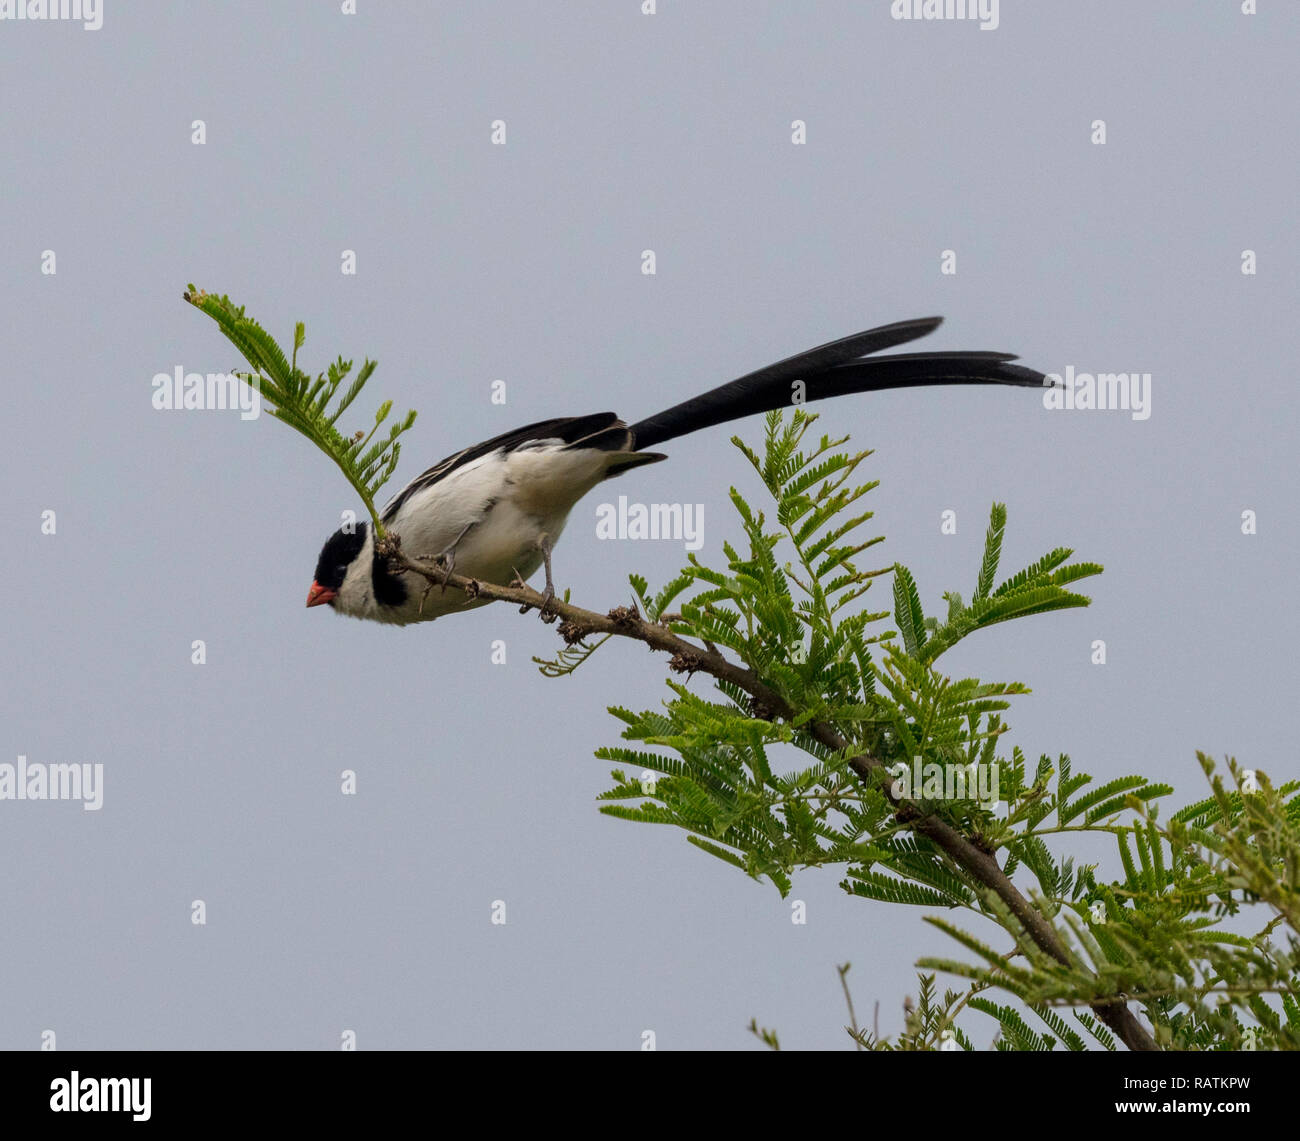 pin-tailed whydah (Vidua macroura), a small songbird with a conspicuous pennant-like tail, Queen Elizabeth National Park, Uganda, Africa - Stock Image